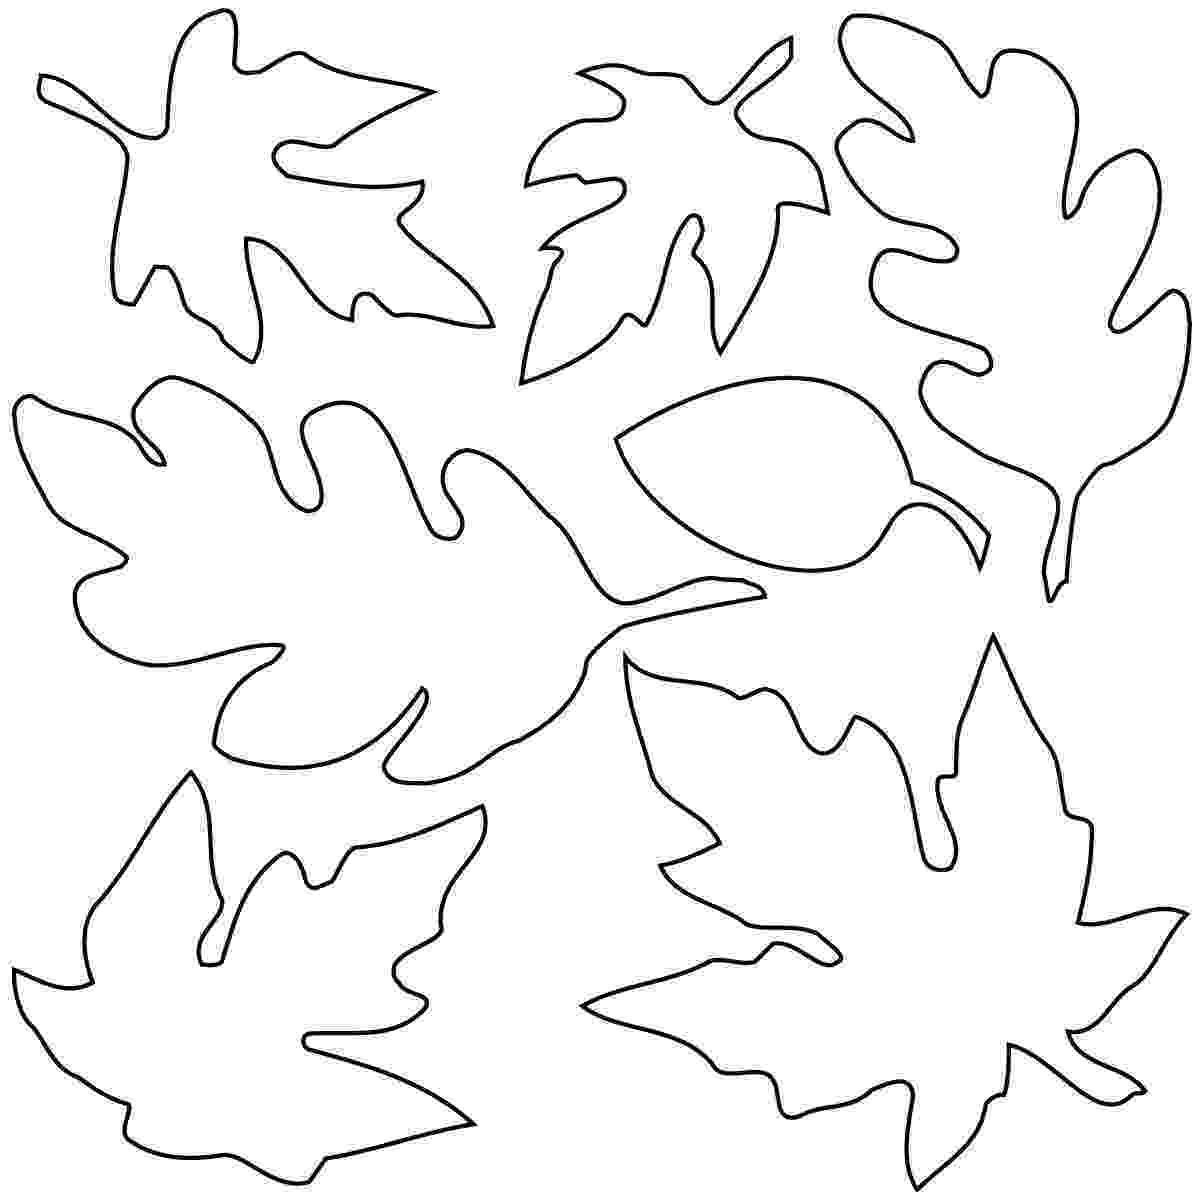 autumn leaves coloring pages fall coloring pages for young children free instant download pages coloring autumn leaves